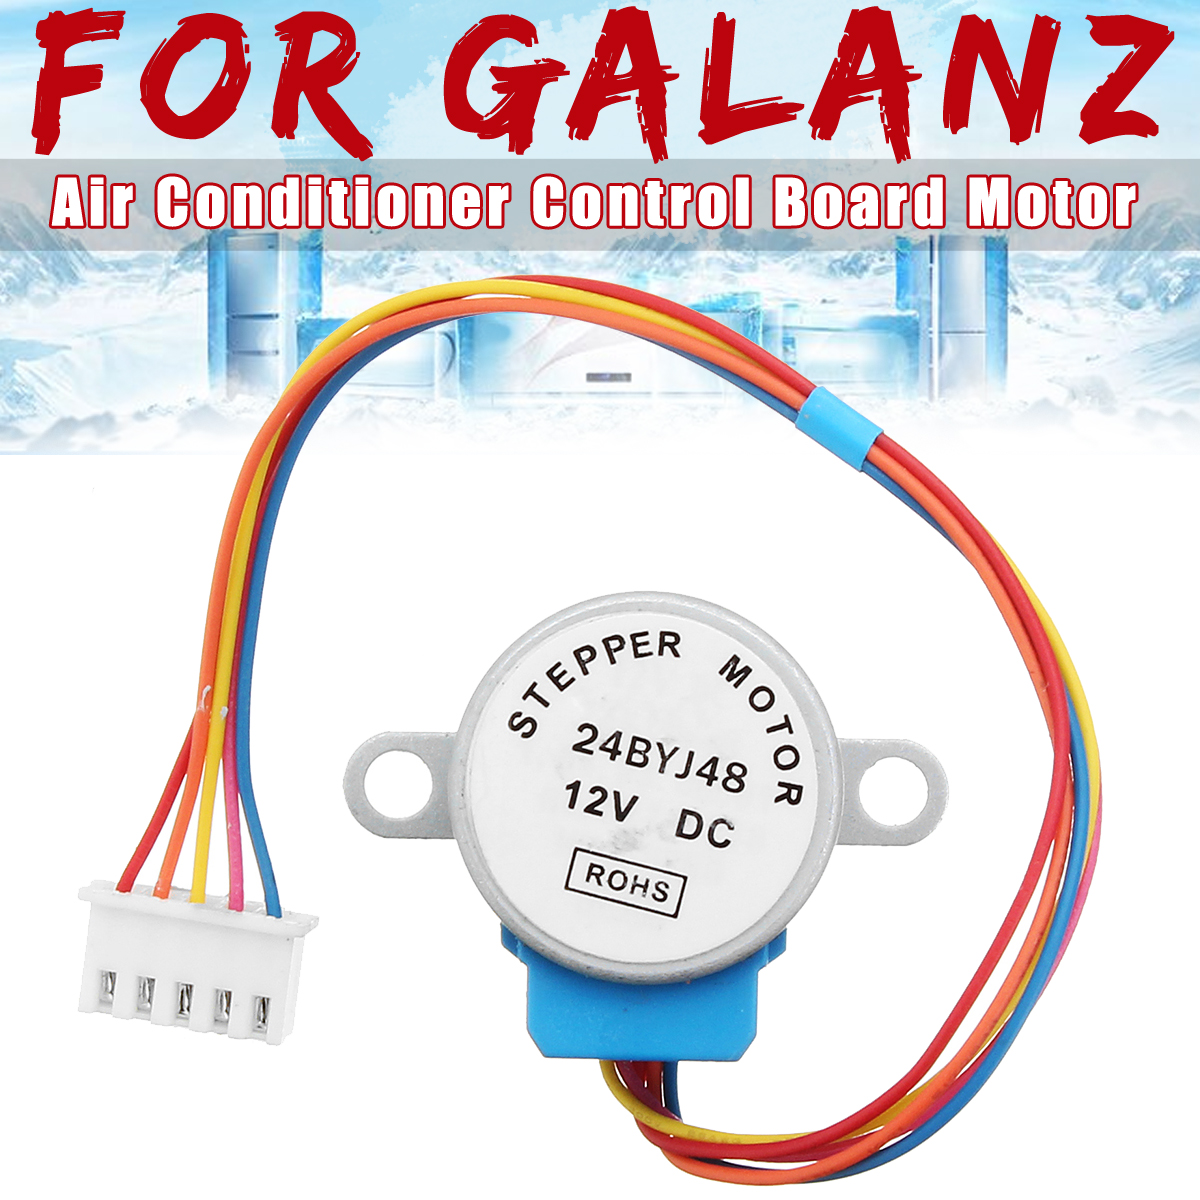 hight resolution of gal12a bd air conditioner control board motor outboard motor metal air conditioner parts for galanz